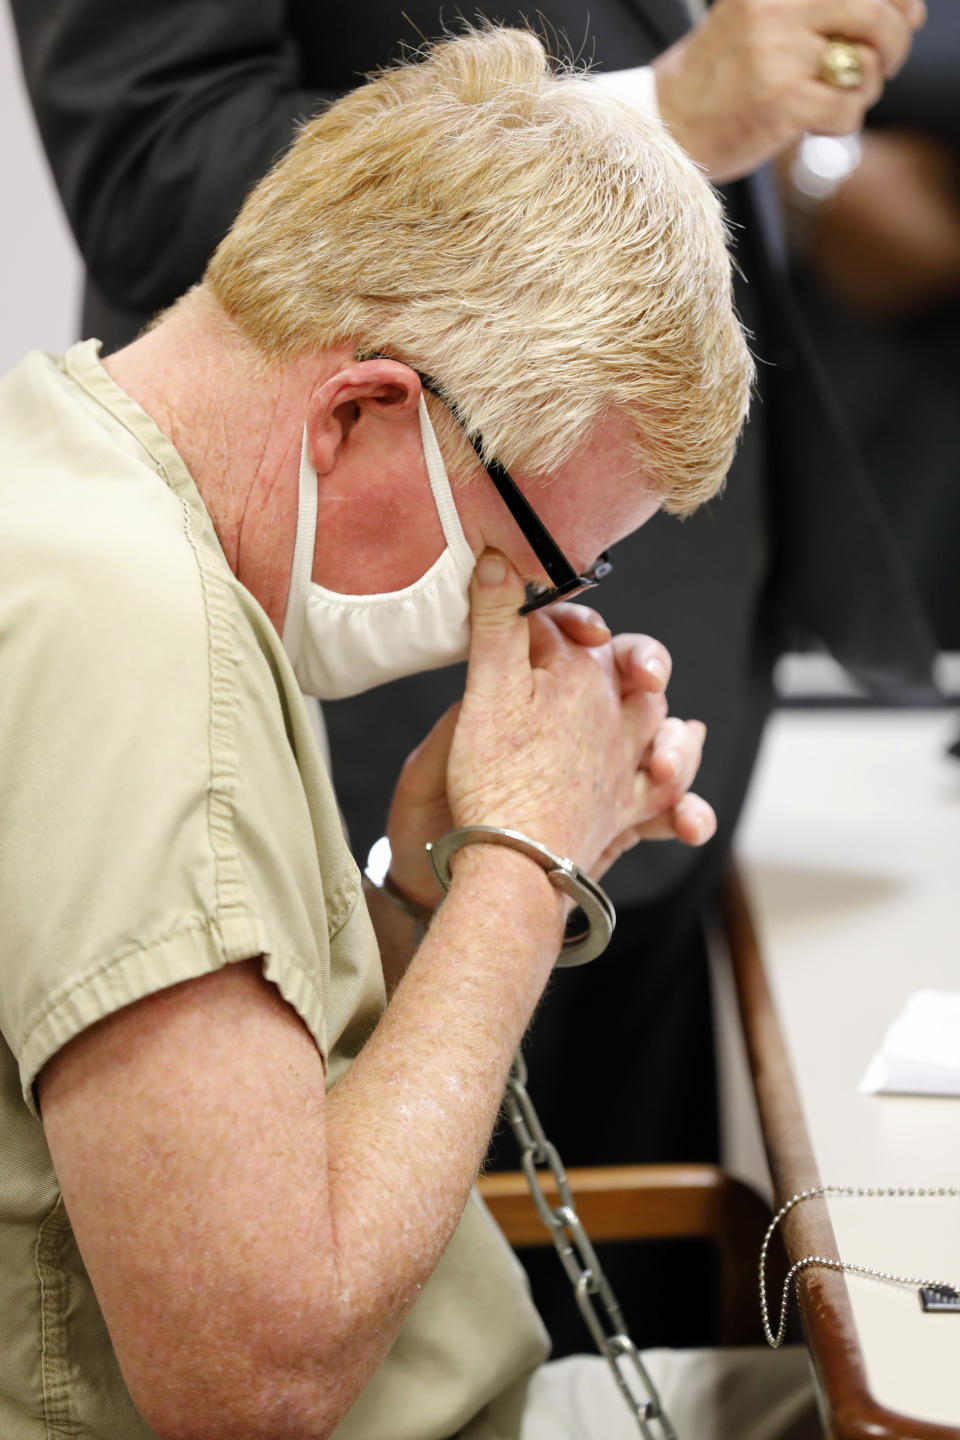 Alex Murdaugh weeps during his bond hearing, Thursday, Sept. 16, 2021, in Varnville, S.C. Murdaugh surrendered Thursday to face insurance fraud and other charges after state police said he arranged to have himself shot in the head so that his son would get a $10 million life insurance payout. (AP Photo/Mic Smith)